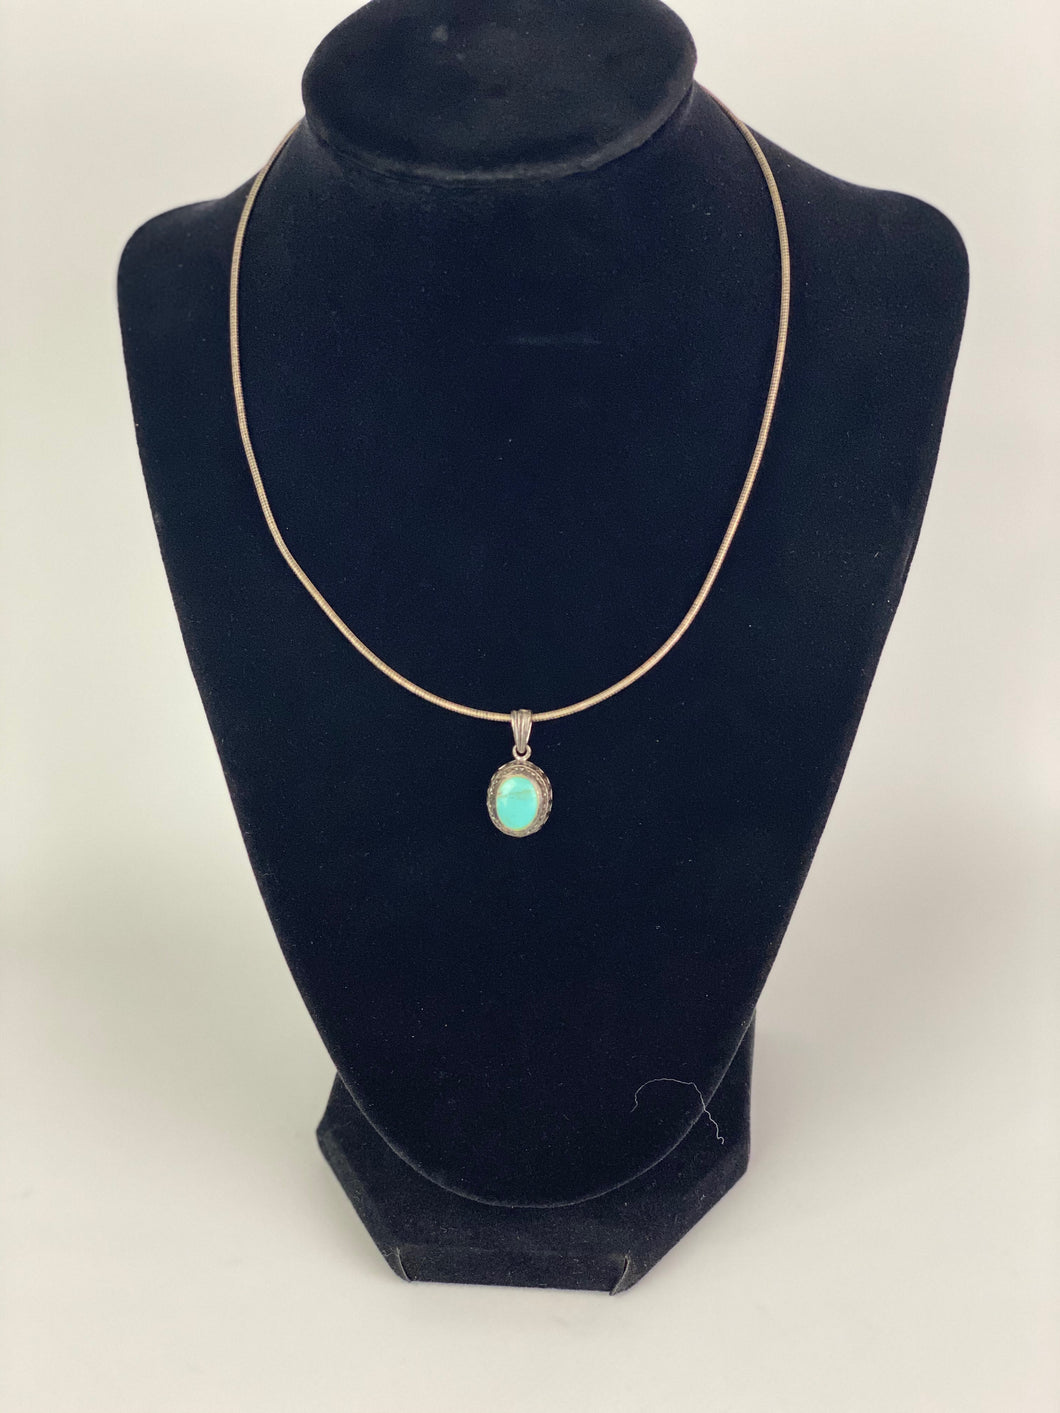 Small Vintage Necklace with Turquoise Pendant-P2004N